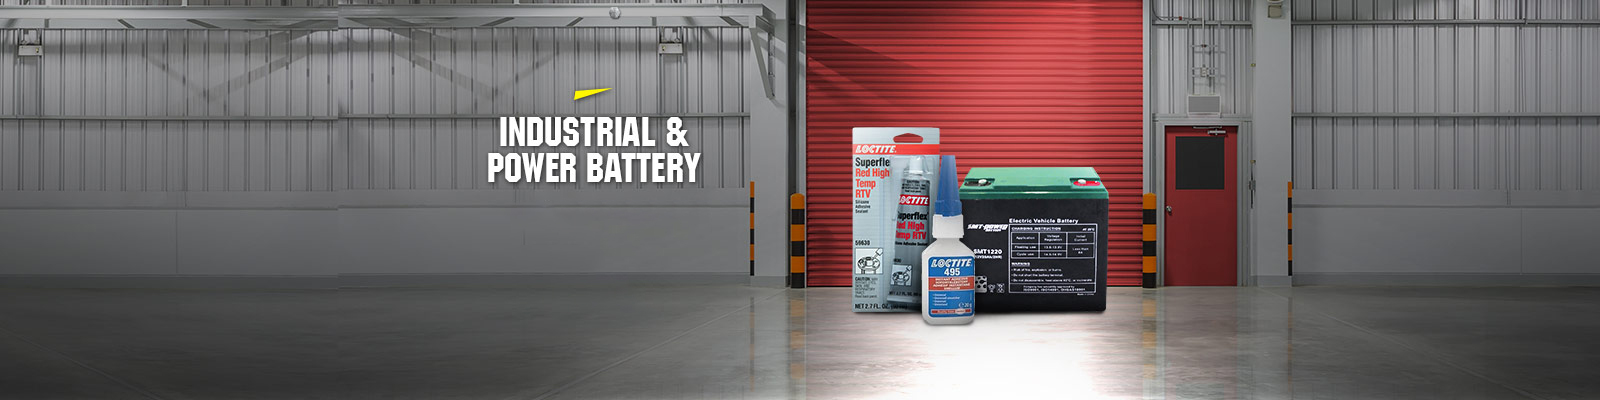 Industrial Adhesive and Power Battery